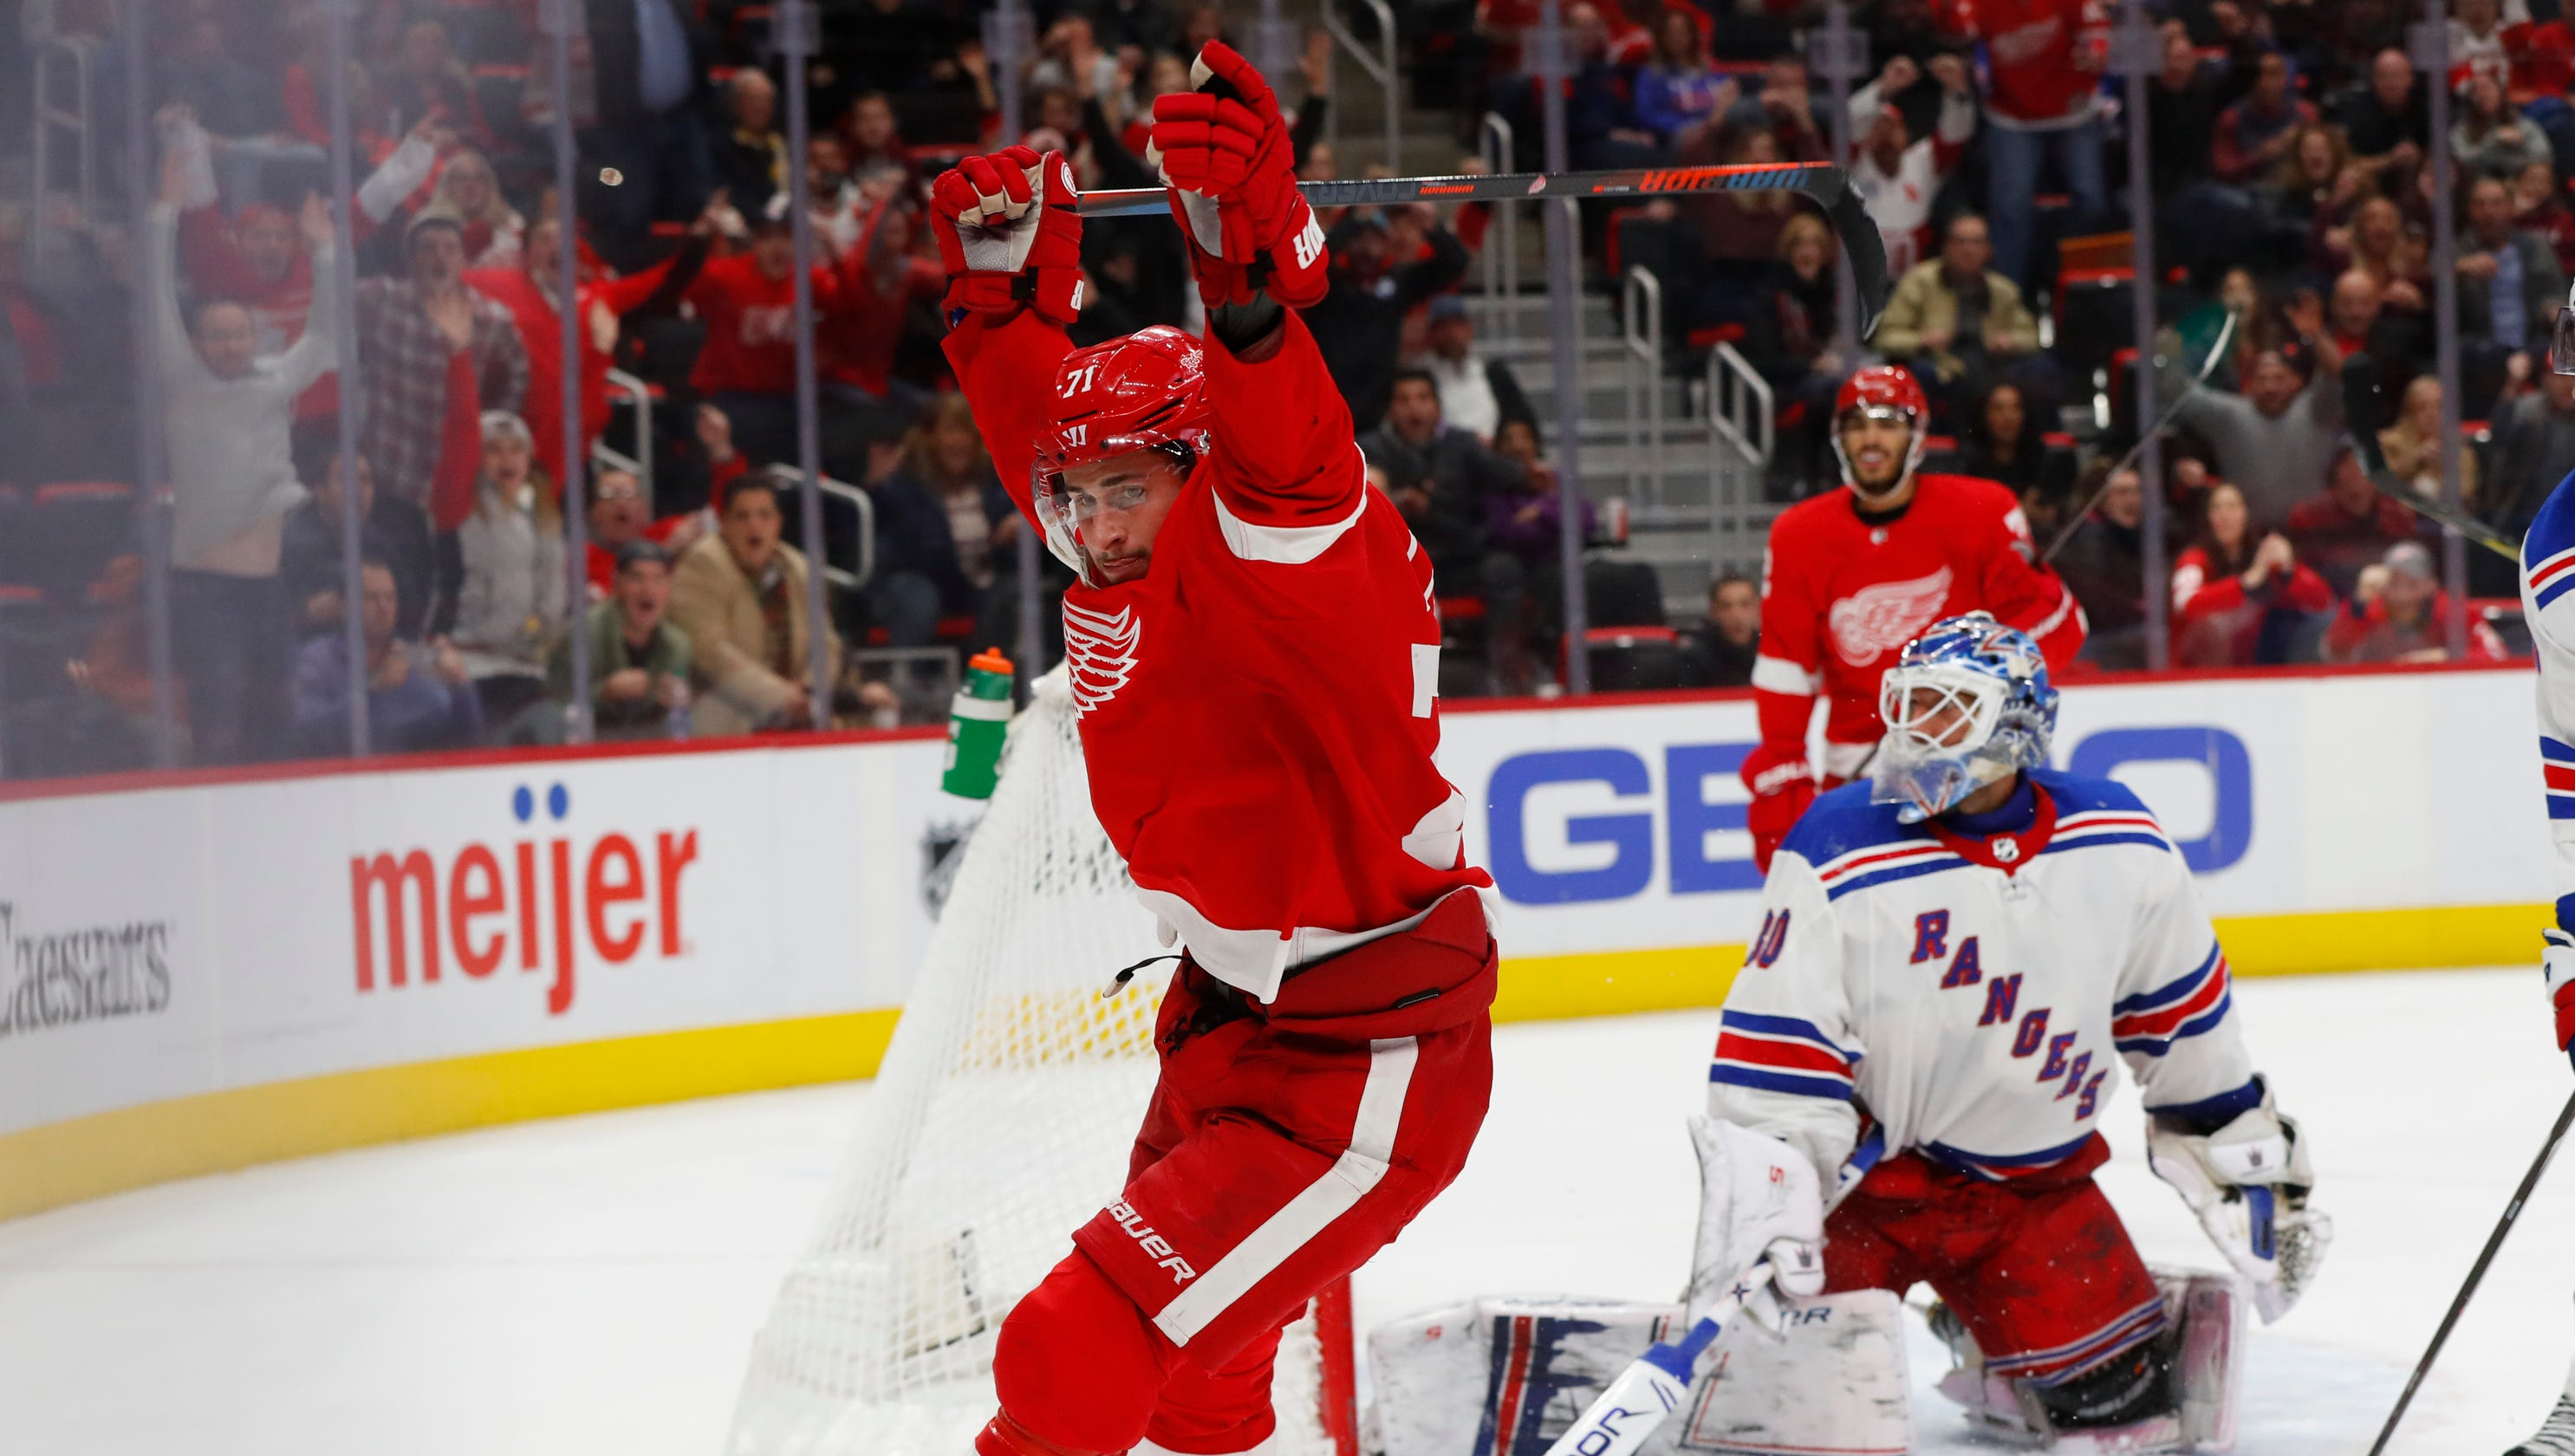 Dylan Larkin S Ot Goal Lifts Detroit Red Wings Past New York Rangers